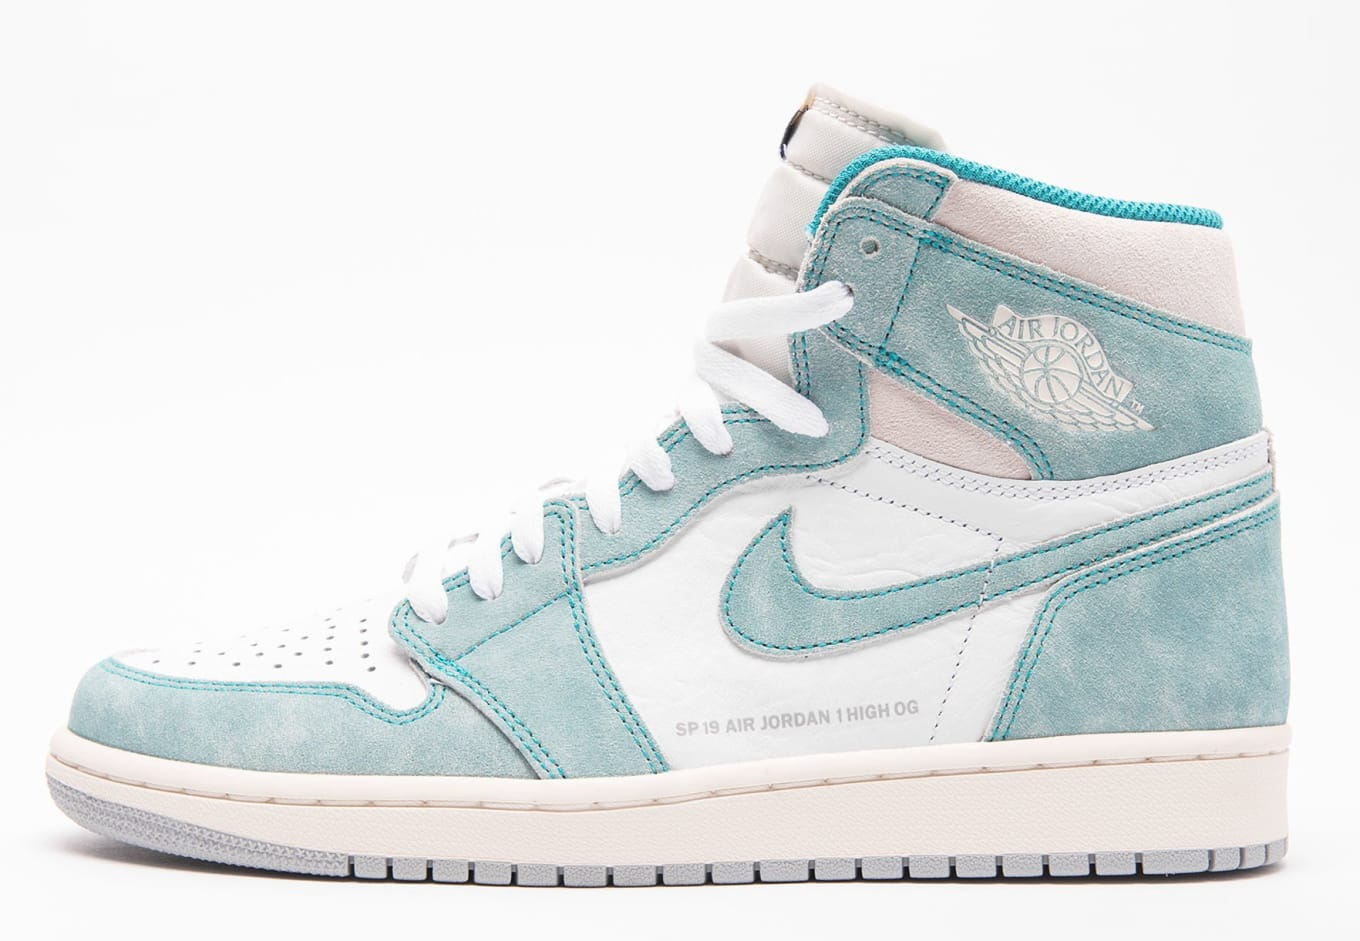 4b0cc1af2ea Air Jordan 1 Turbo Green/White/Light Smoke Grey/Sail Release Date ...